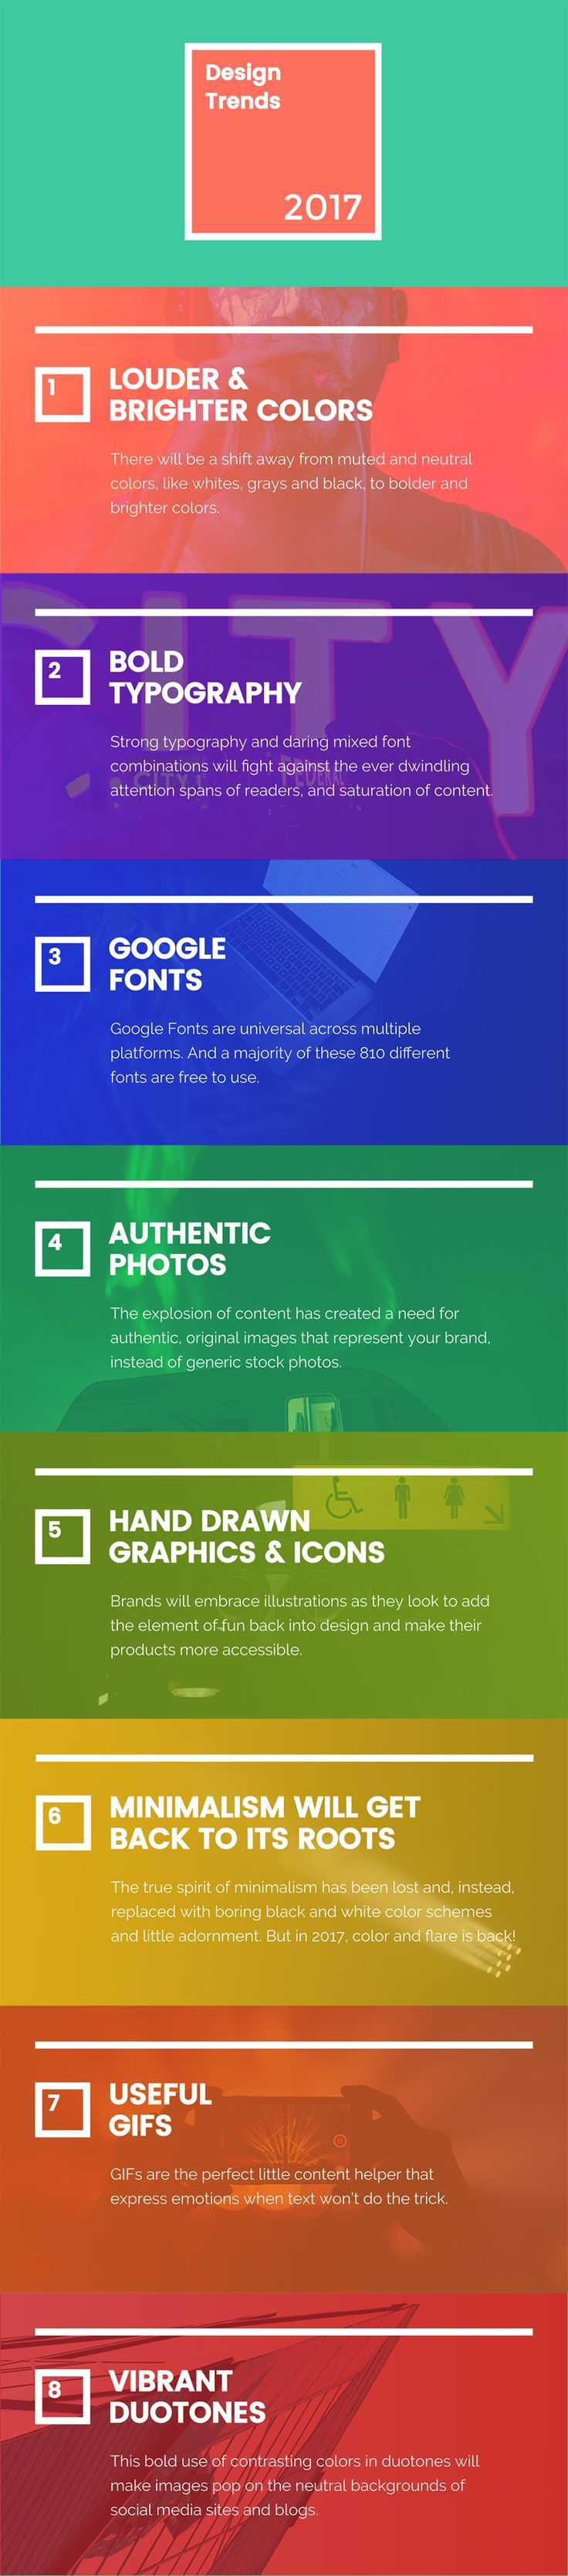 Graphic Design Trends That Will Take Over in 2017 - UltraLinx